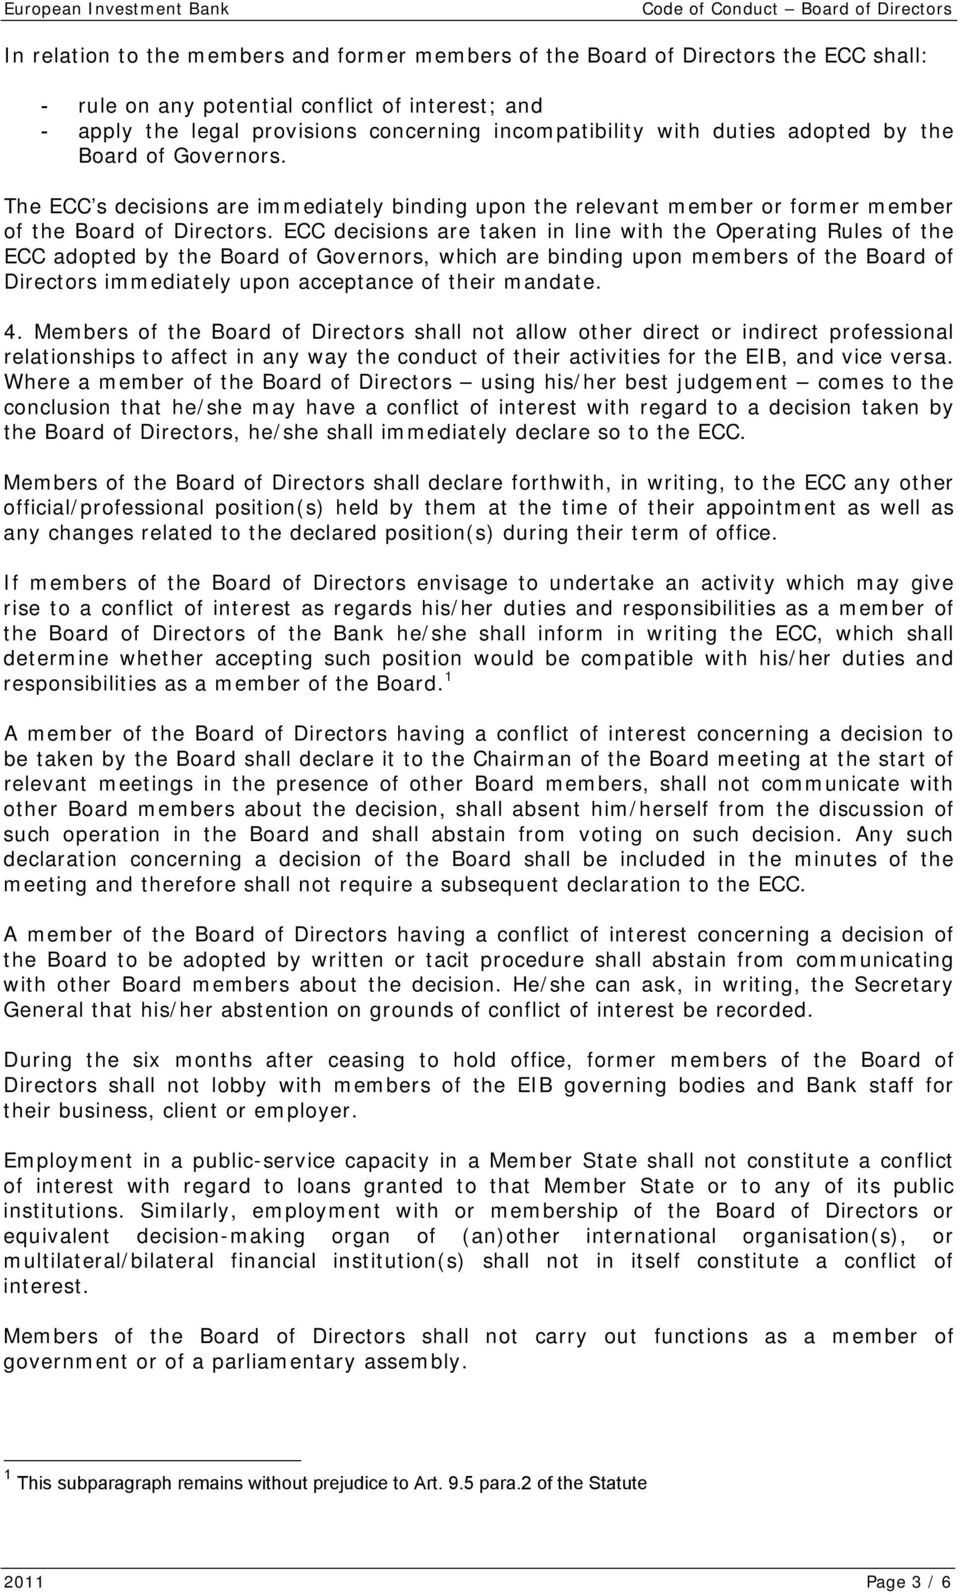 ECC decisions are taken in line with the Operating Rules of the ECC adopted by the Board of Governors, which are binding upon members of the Board of Directors immediately upon acceptance of their